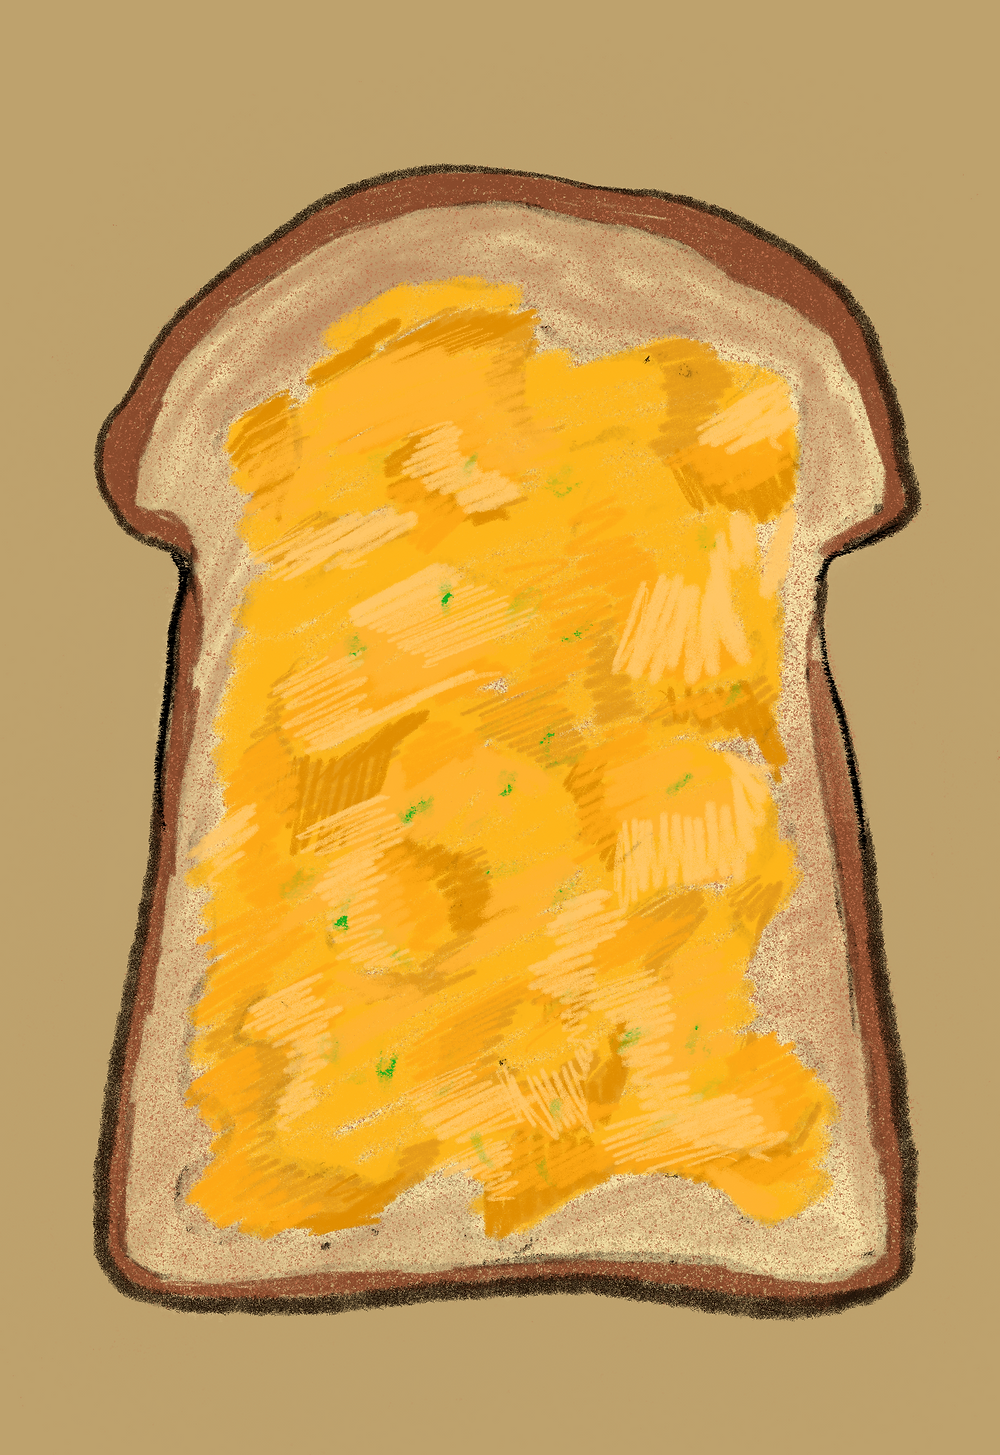 an illustration of a scrambled egg on toast